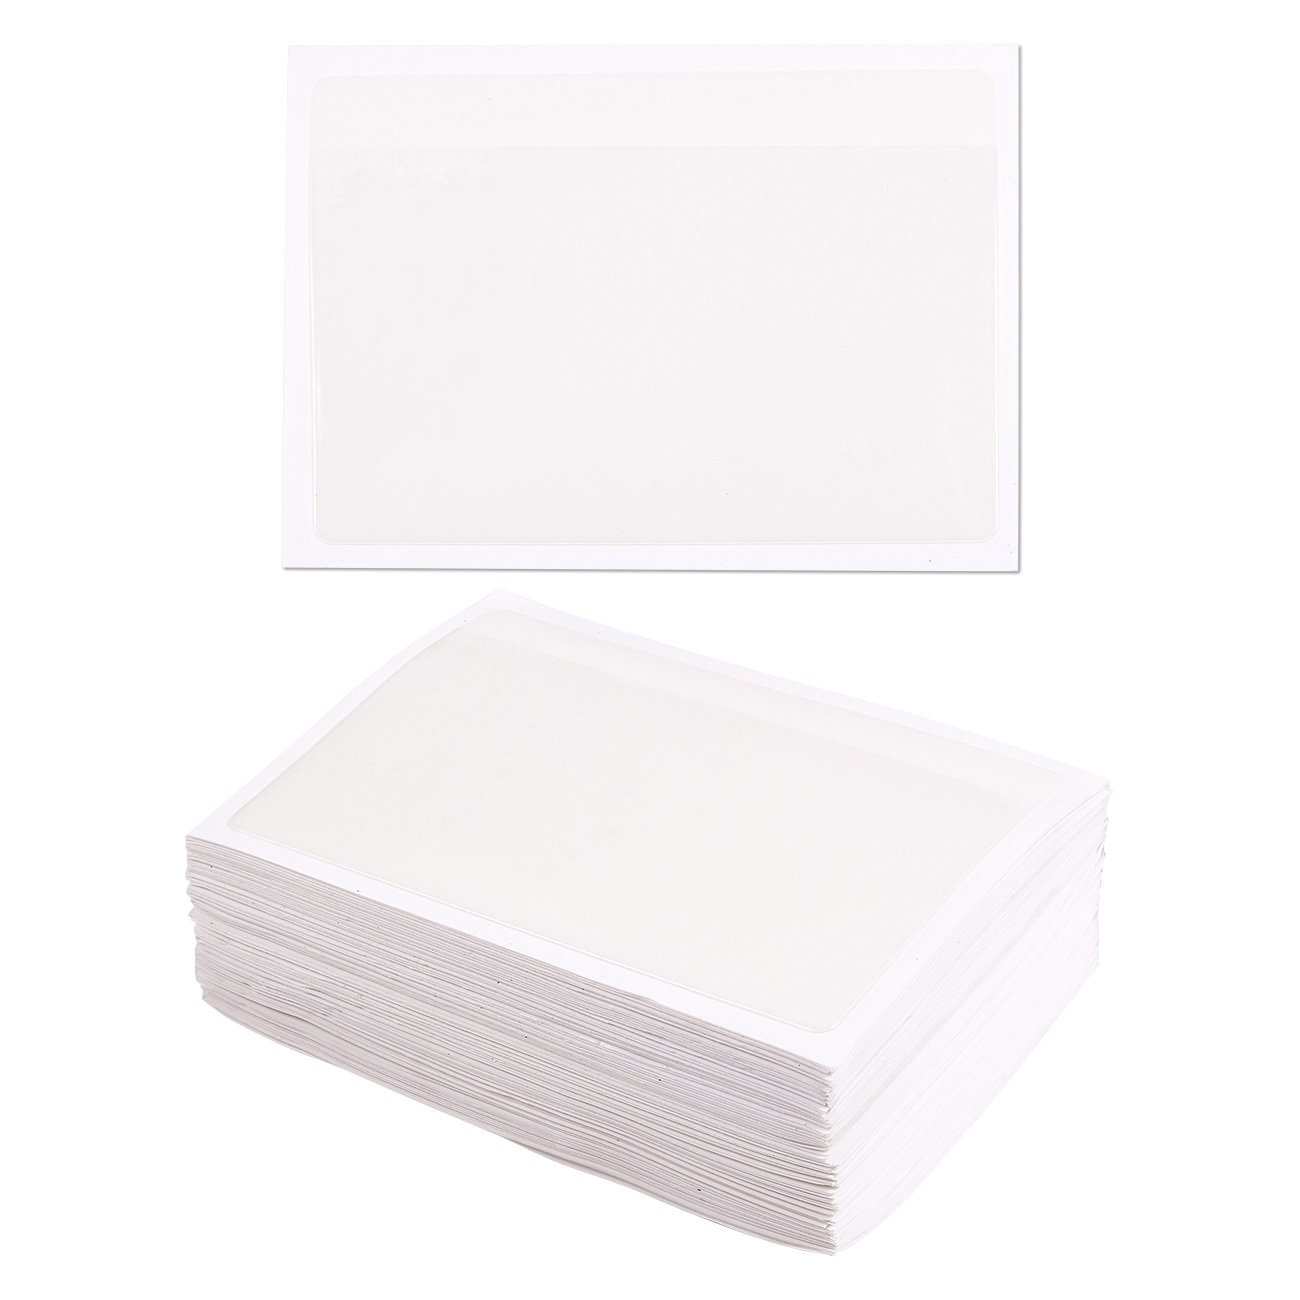 100-Pack Self-Adhesive Index Card Pockets with Top Open for Loading - Ideal Card Holder for Organizing and Protecting Your Index Cards - Crystal Clear Plastic, 3.6 x 5.25 Inches